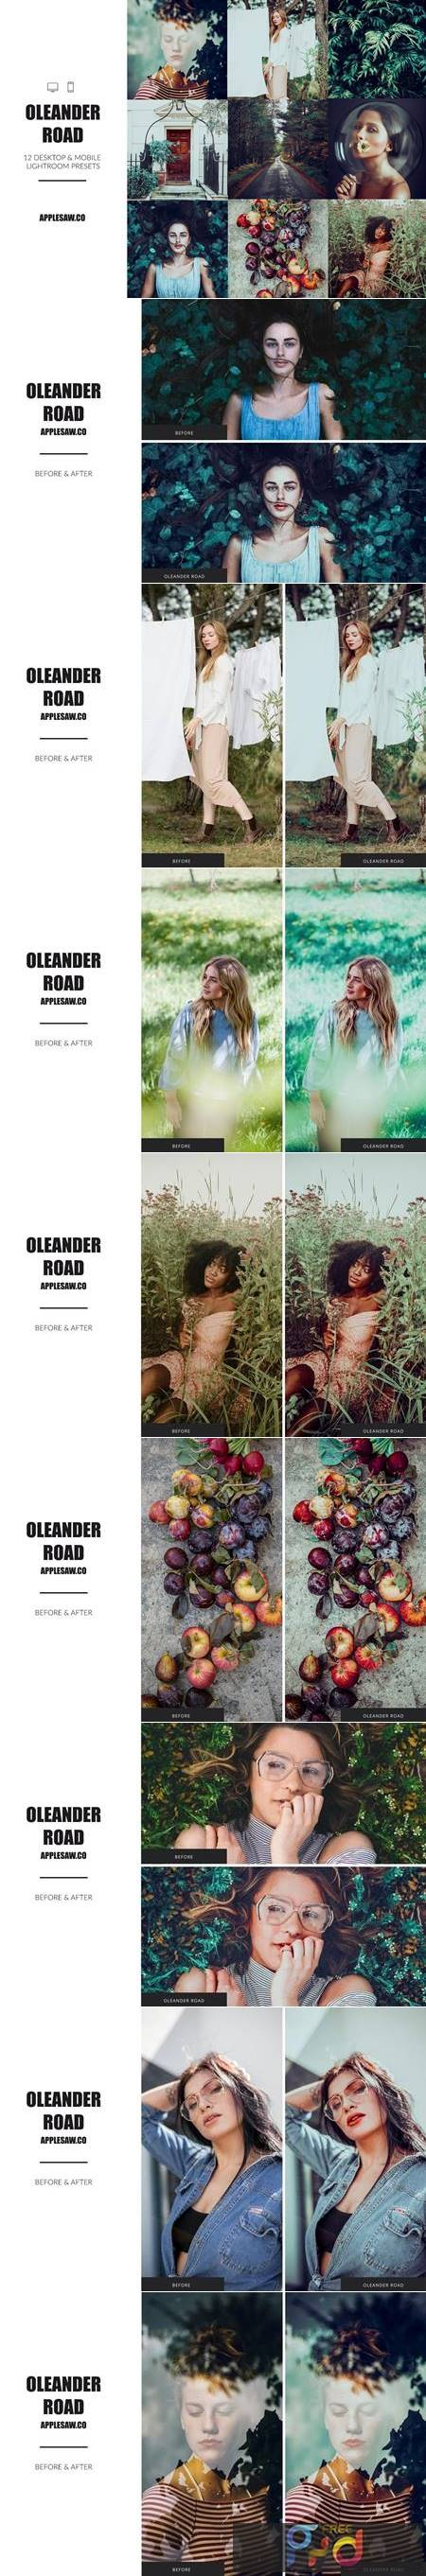 Oleander Road Lightroom Presets 5270591 1